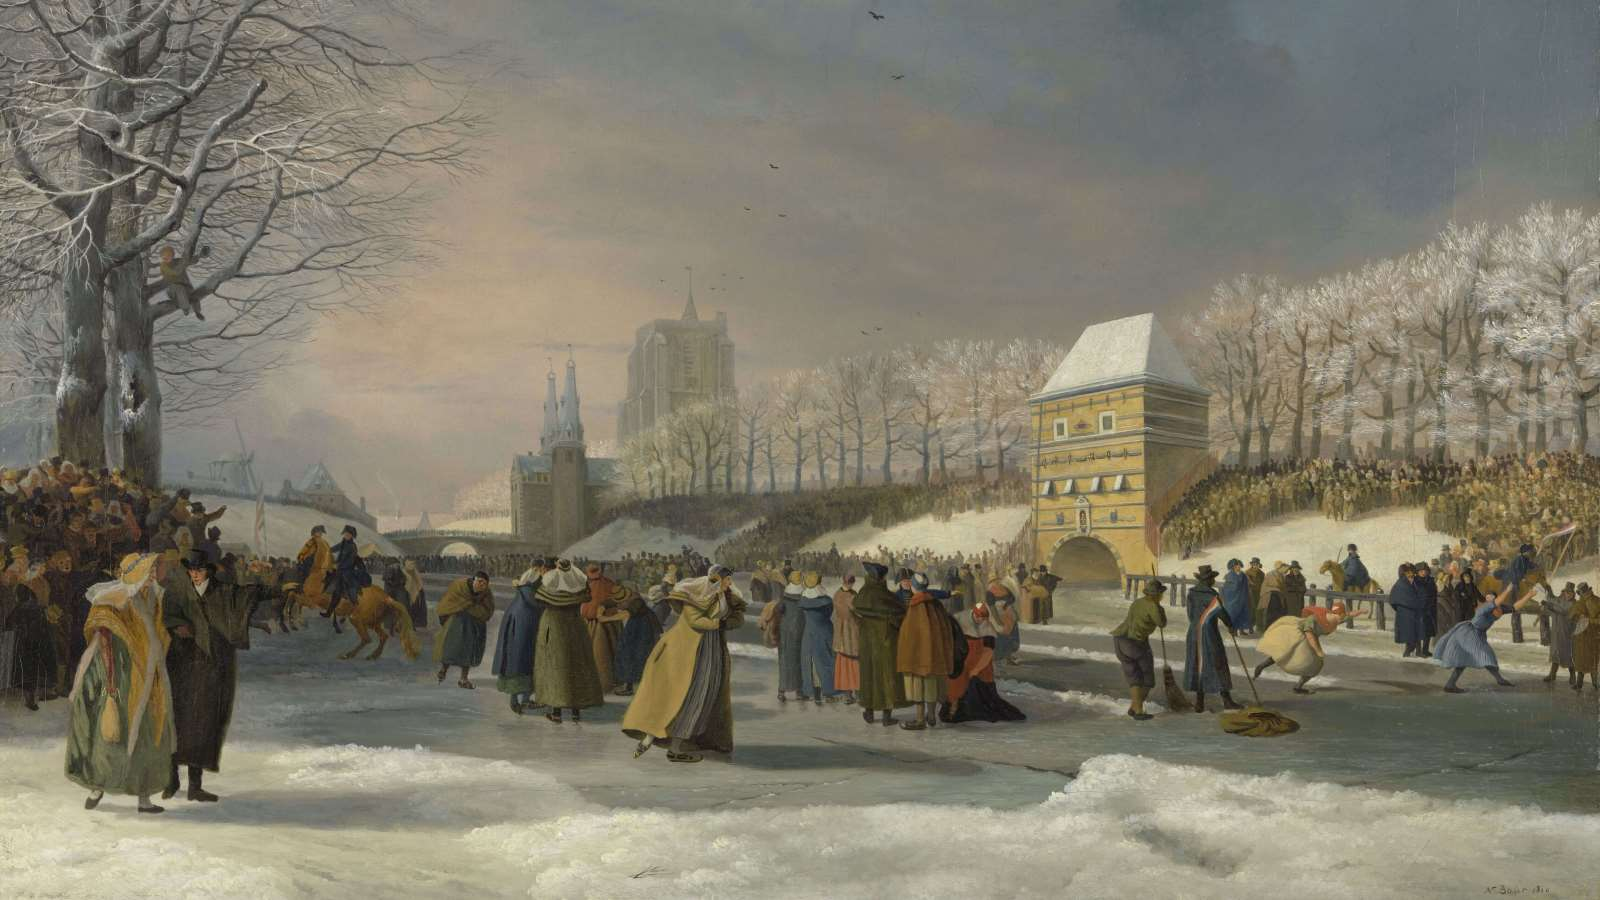 Nicolaas Baur, Women's Skating Competition on the Stadsgracht in Leeuwarden, 21 January 1809 cover